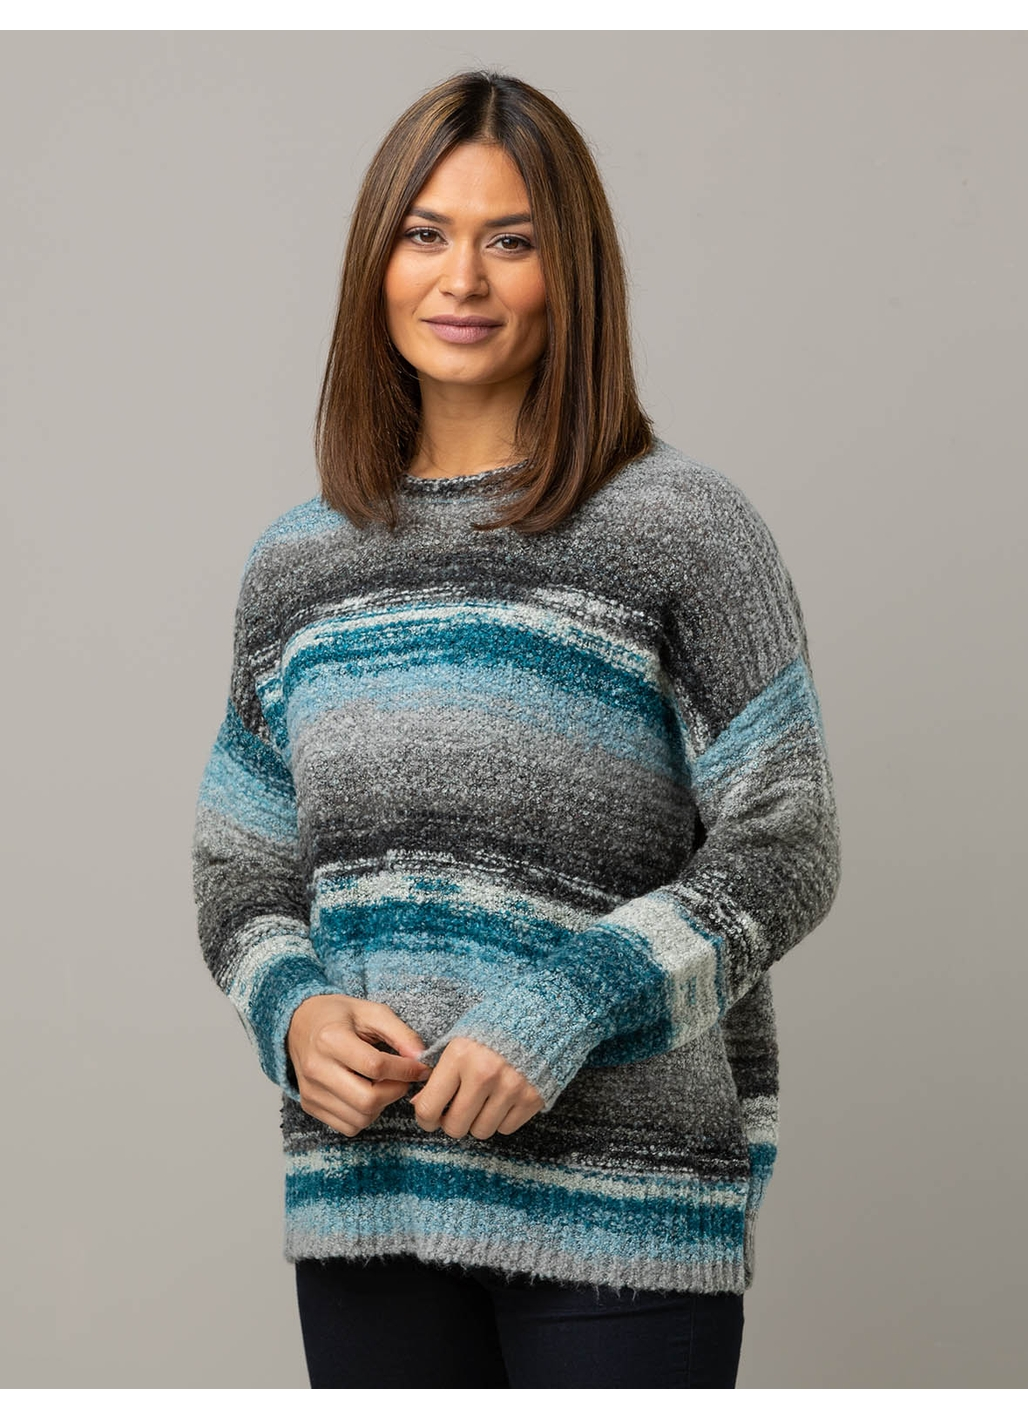 Julie Blurred Stripe Knitted Jumper in Teal